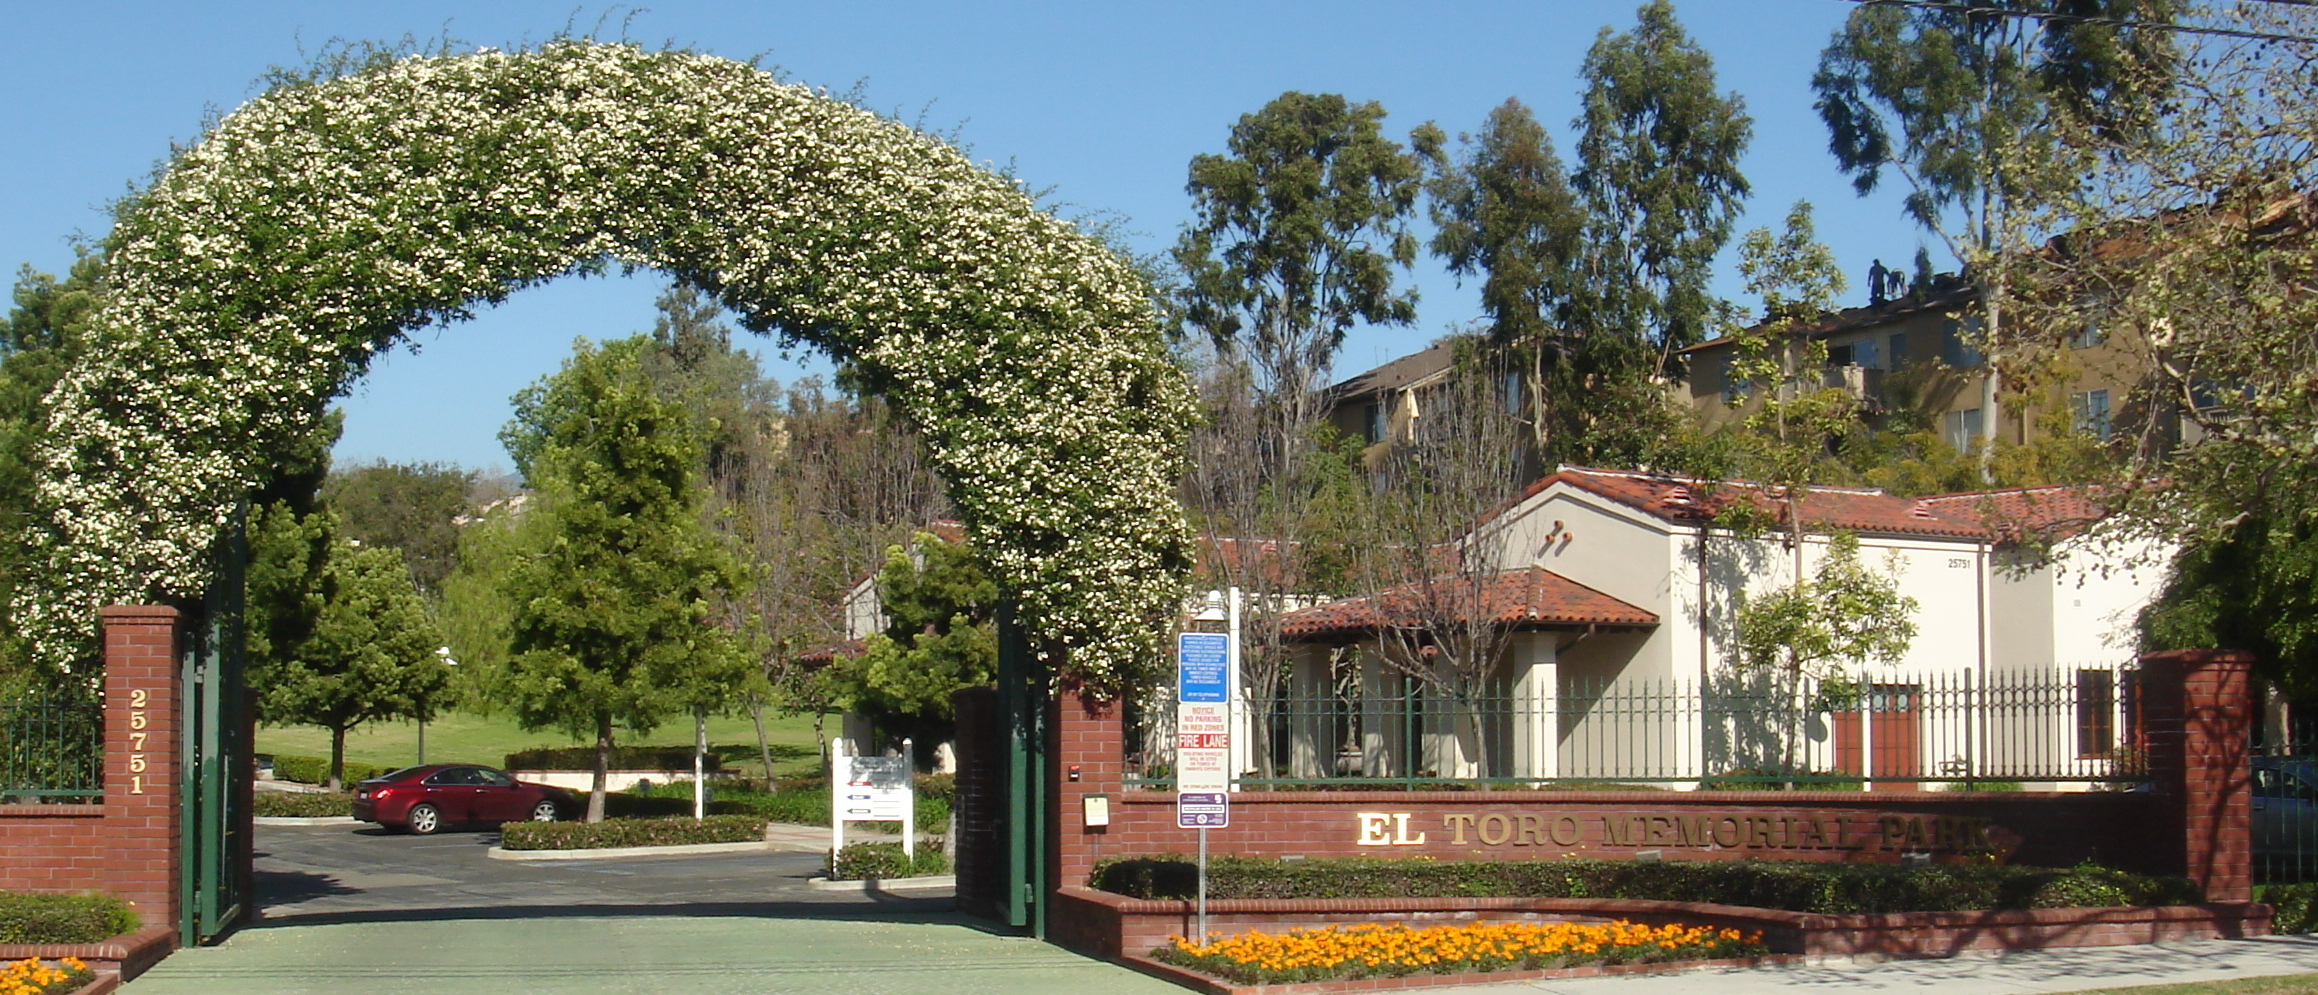 Photo of entrance to El Toro Memorial Park